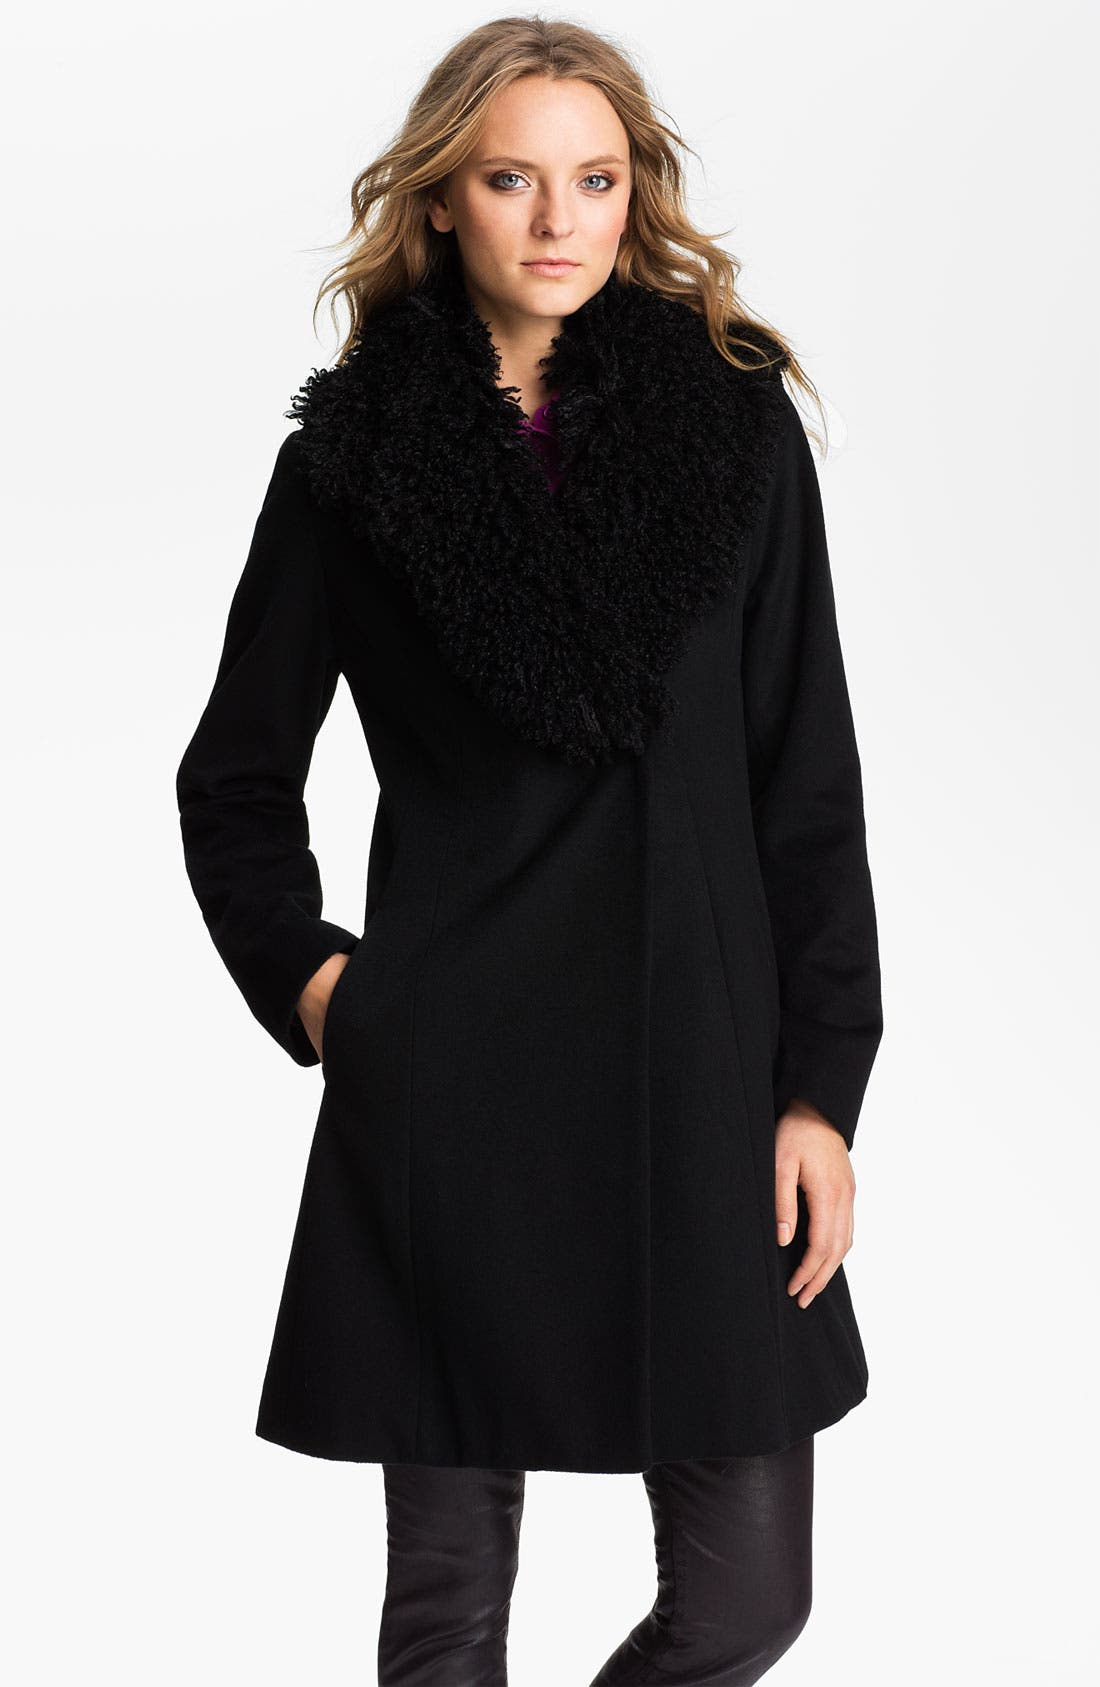 Alternate Image 1 Selected - Laundry by Shelli Segal Faux Fur Collar Coat